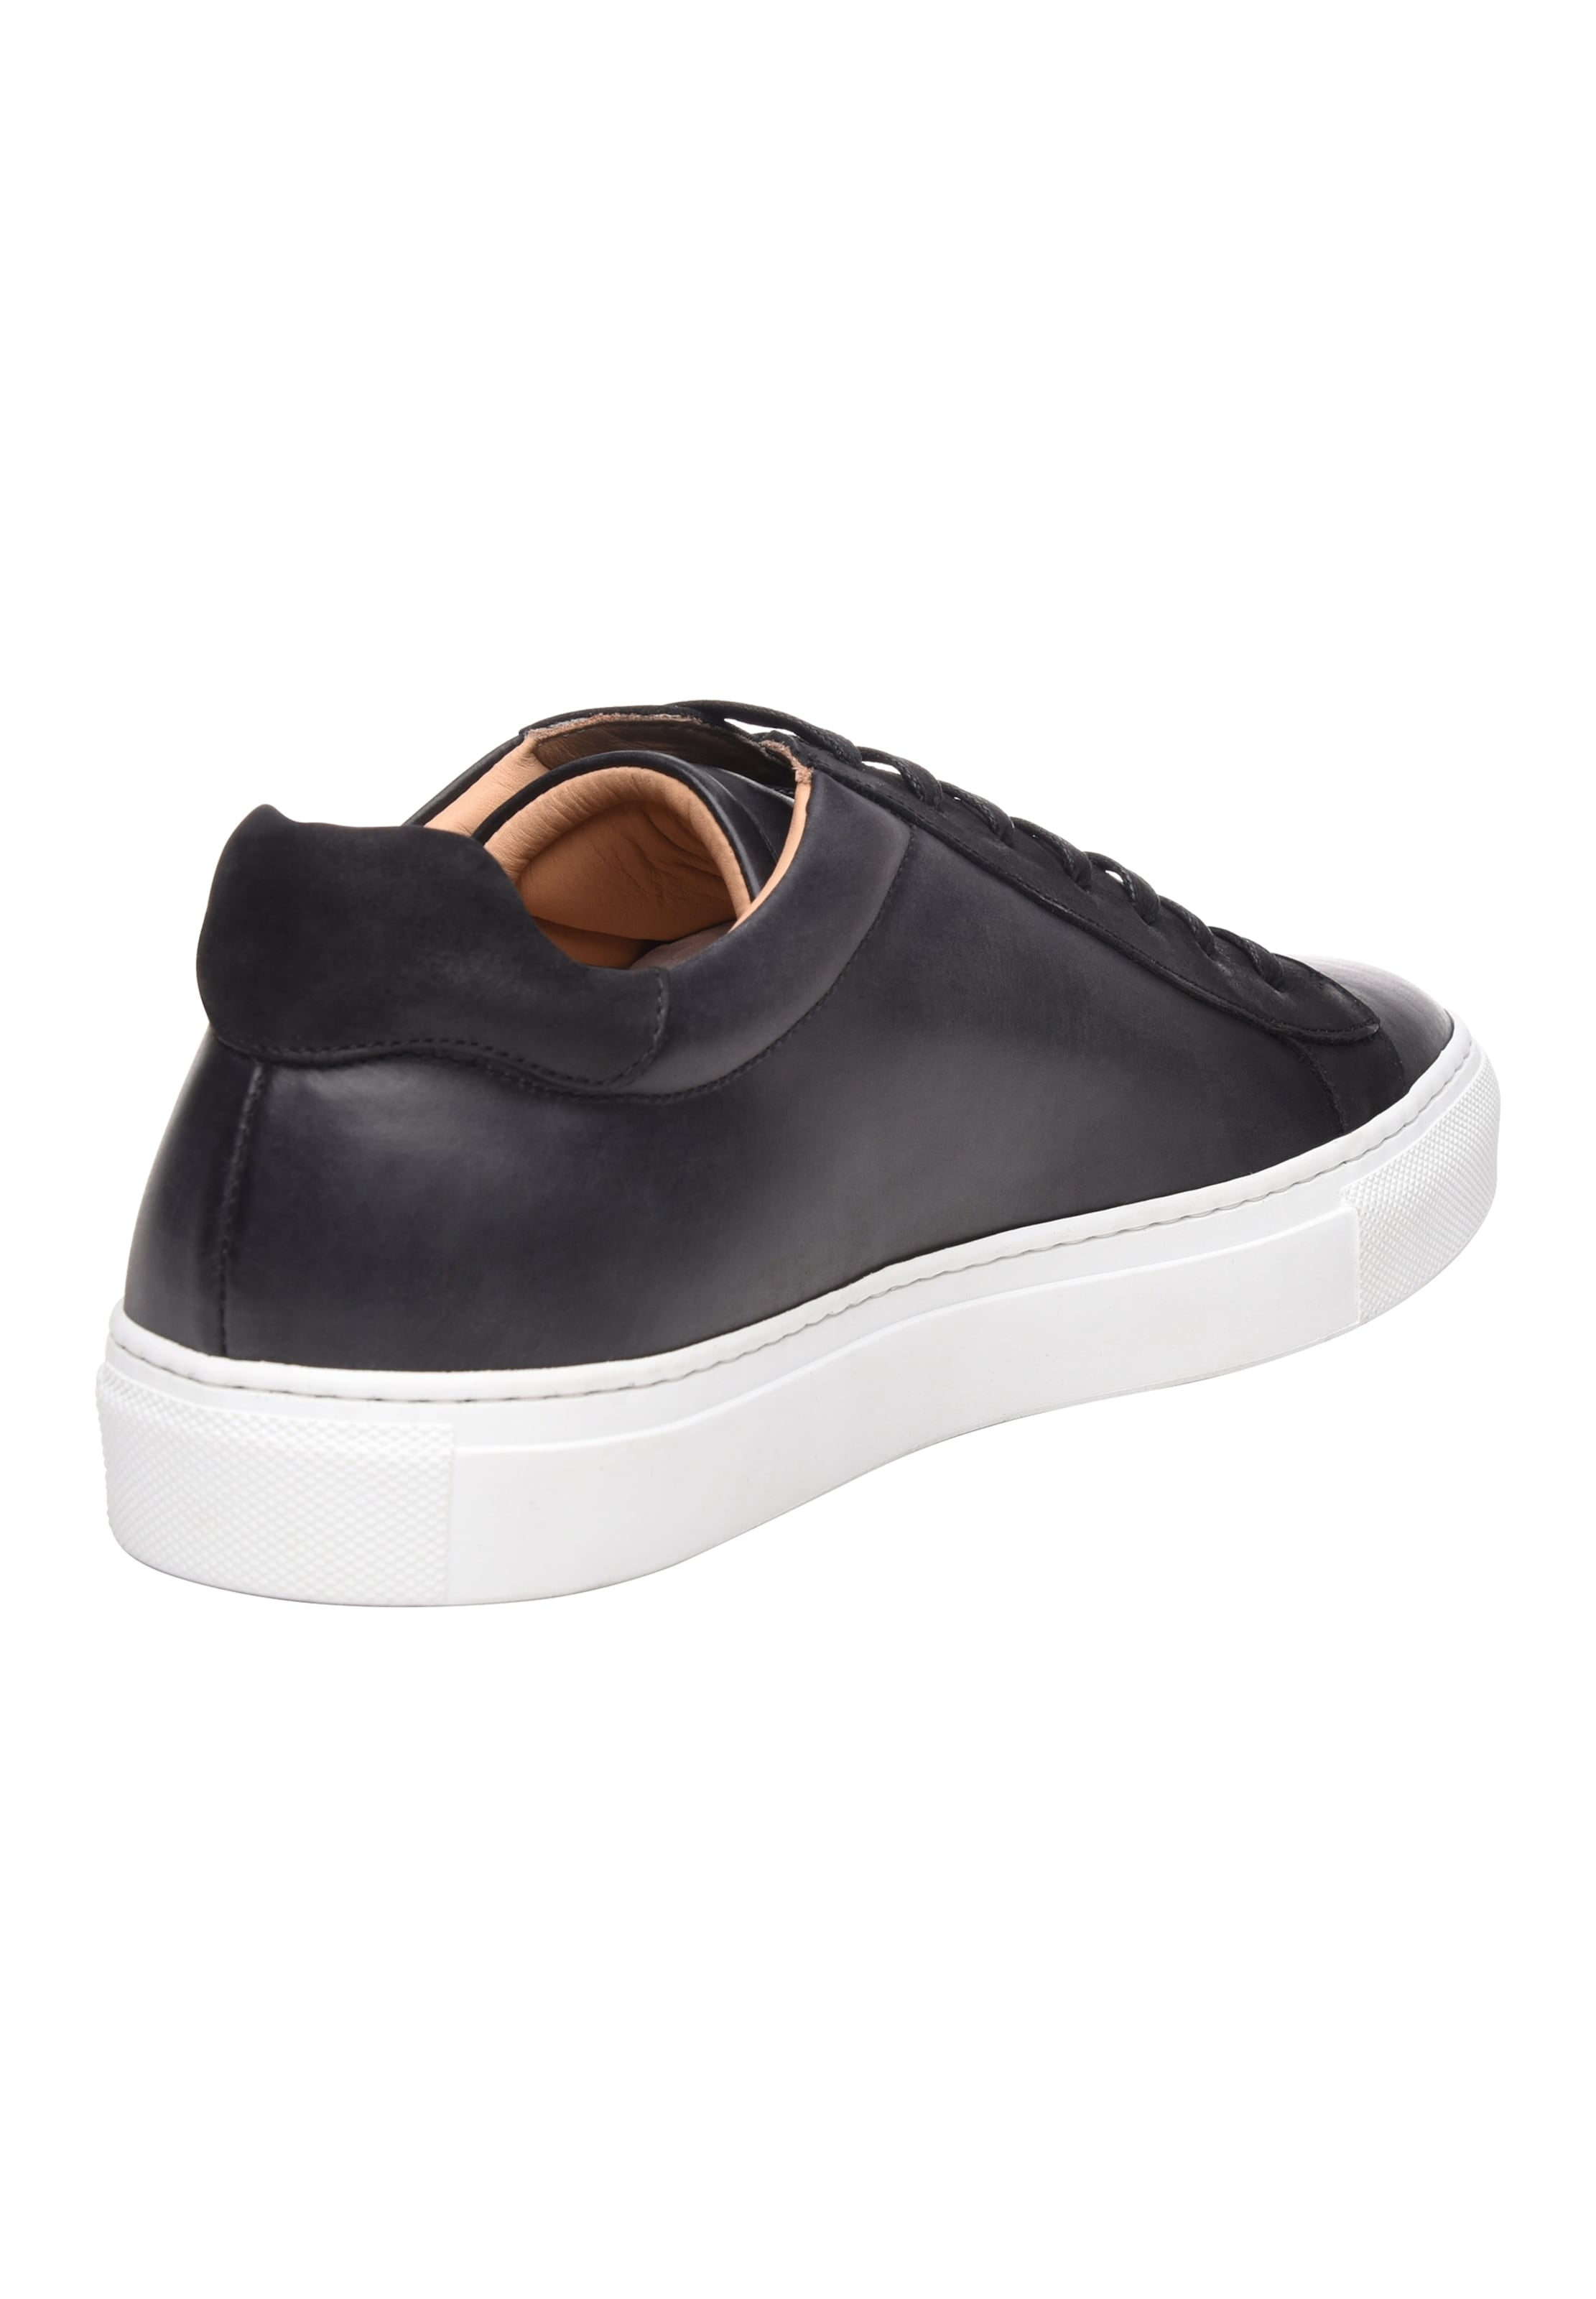 Shoepassion Shoepassion In Shoepassion Sneaker In Schwarz Sneaker Schwarz uXZPkiO